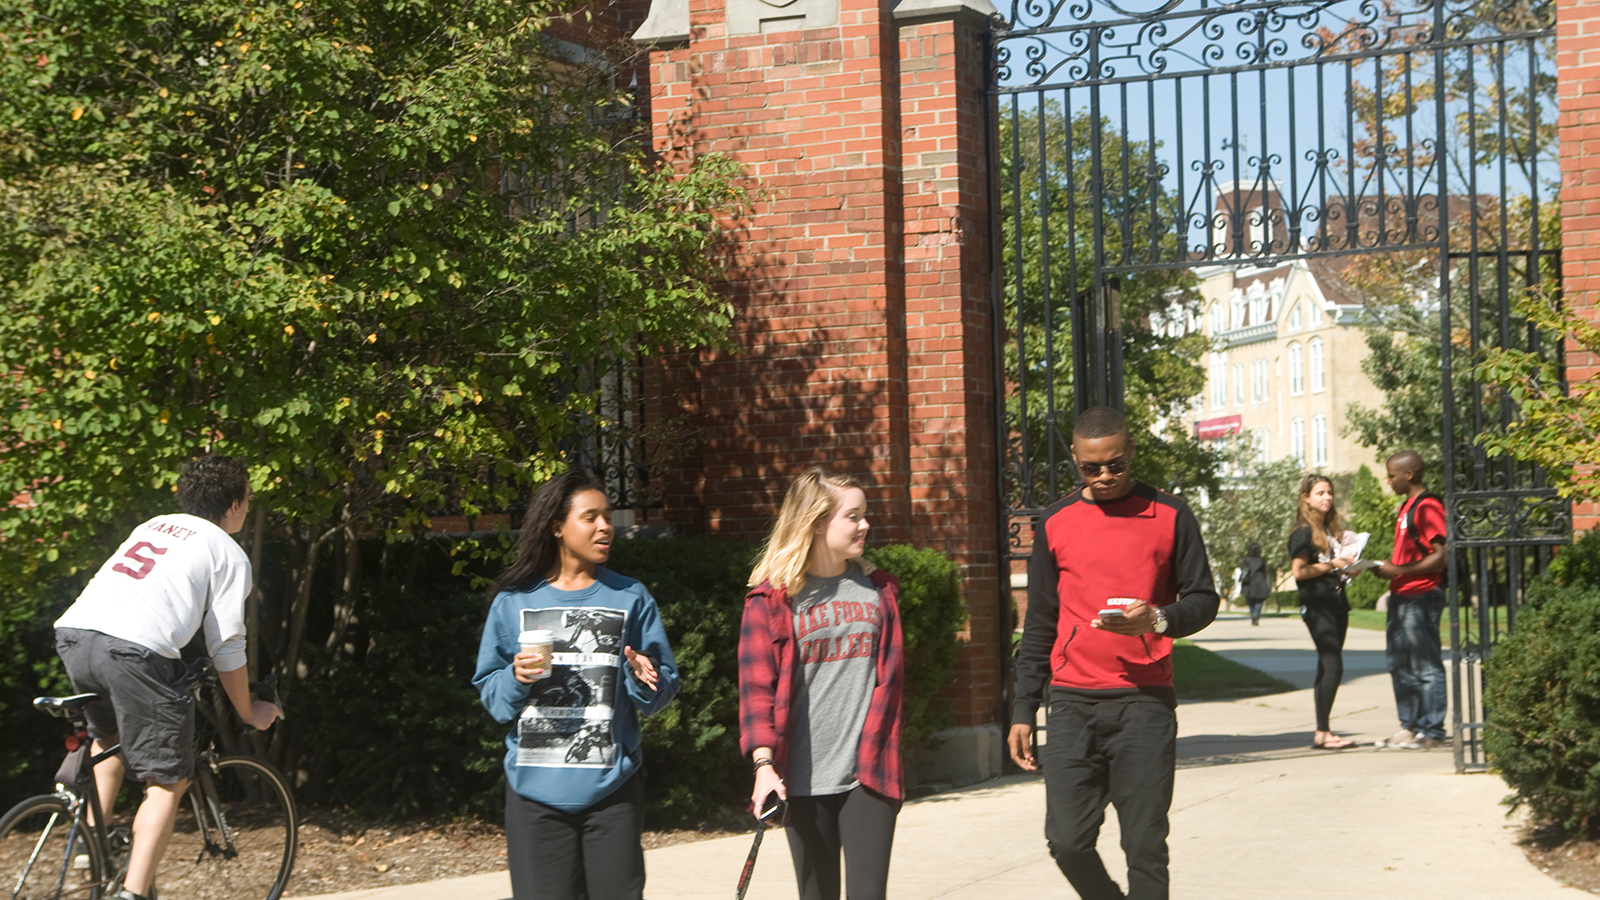 Students walking through the gates at the College